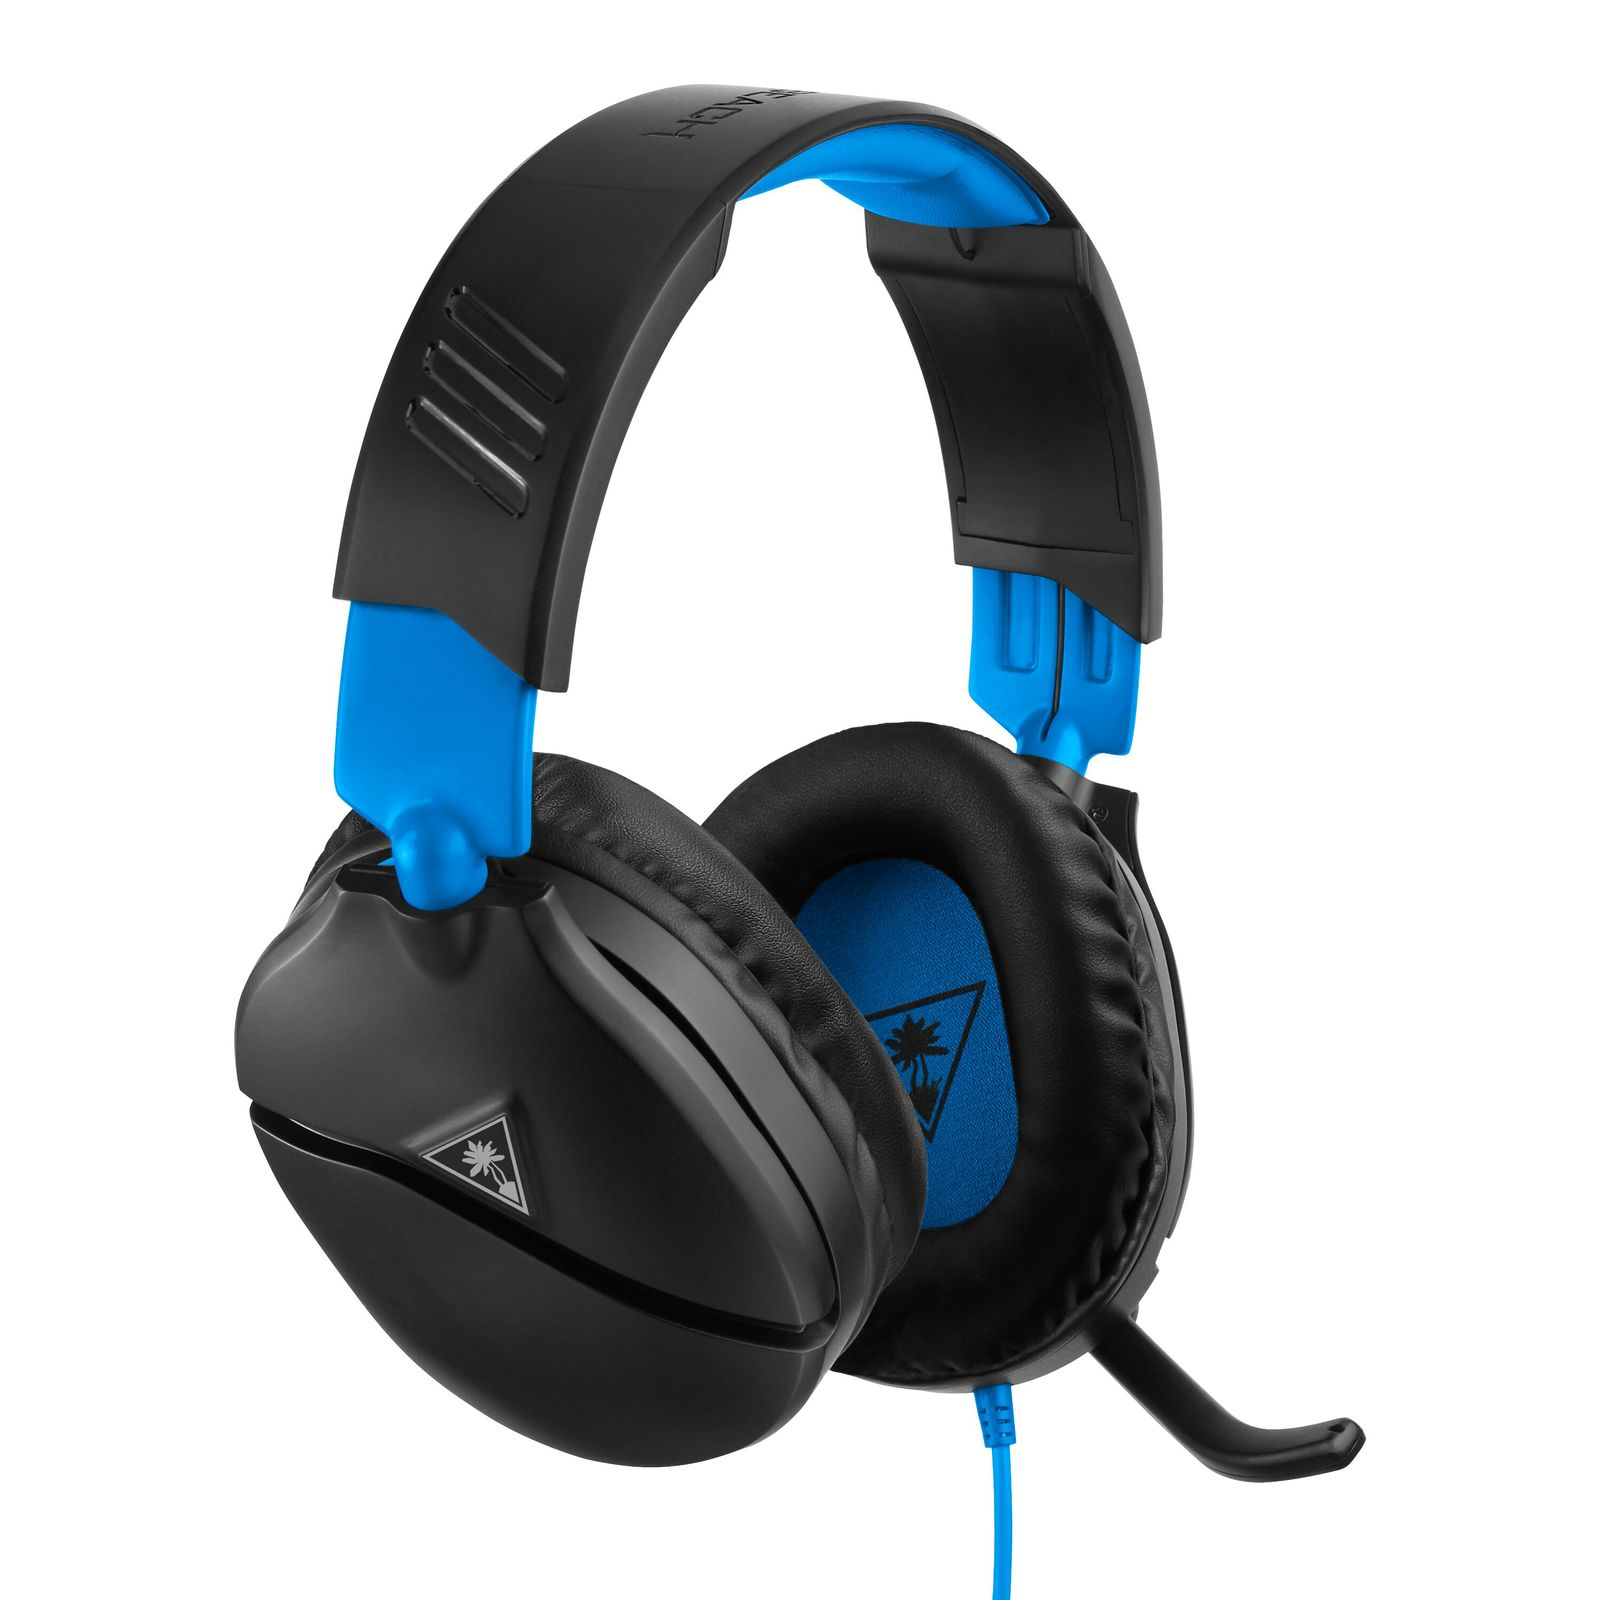 Turtle Beach Ear Force Recon 70P Stereo Gaming Headset for PS4 image